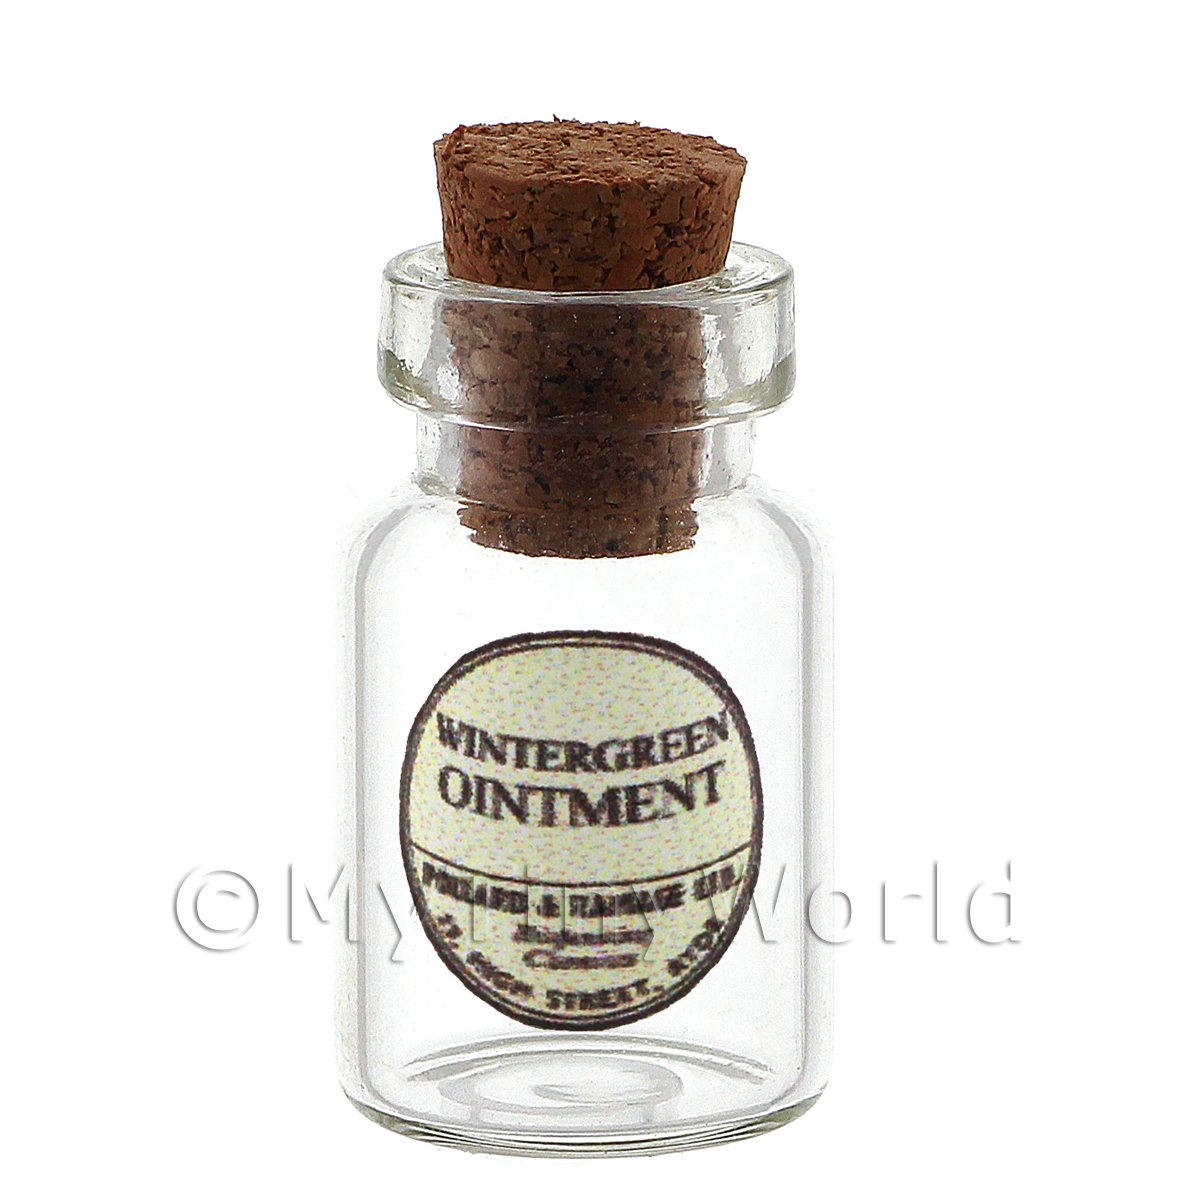 Dolls House Miniature Wintergreen Ointment Glass Apothecary Ointment Jar